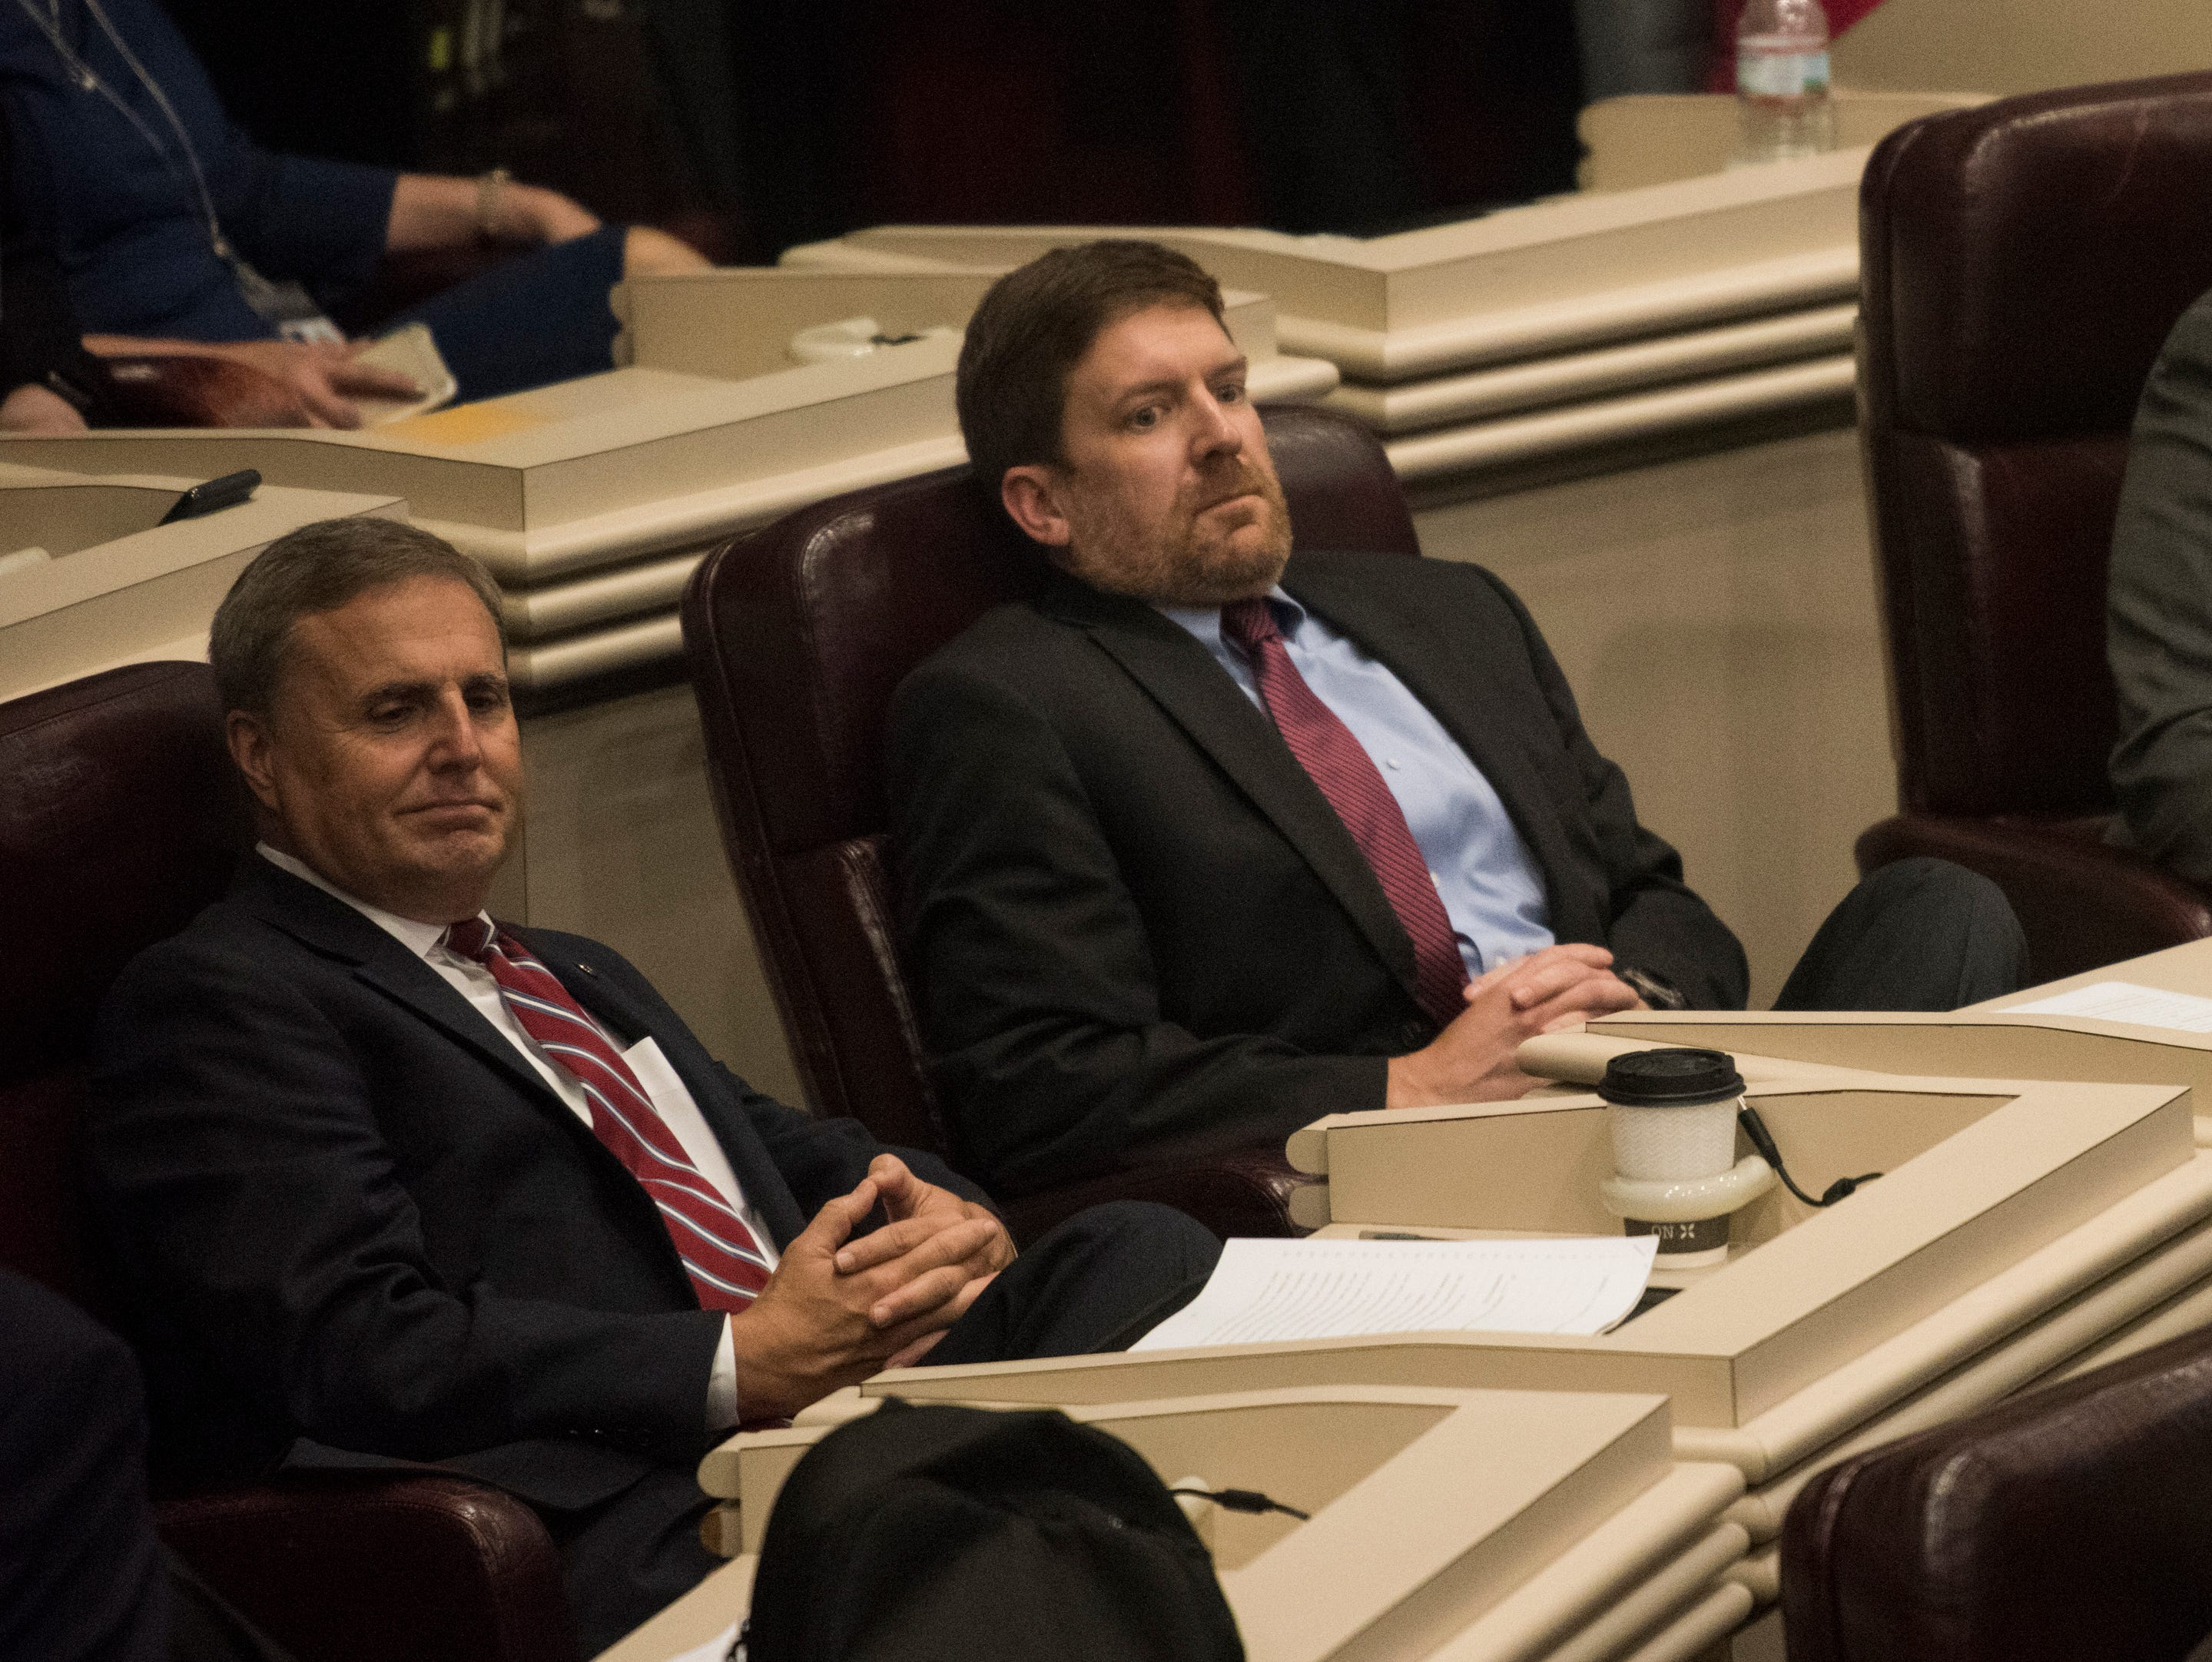 Rep. Bill Poole, right, during the 2019 Alabama Legislature's organizational session at the Alabama State House in Montgomery, Ala., on Tuesday, Jan. 8, 2019.